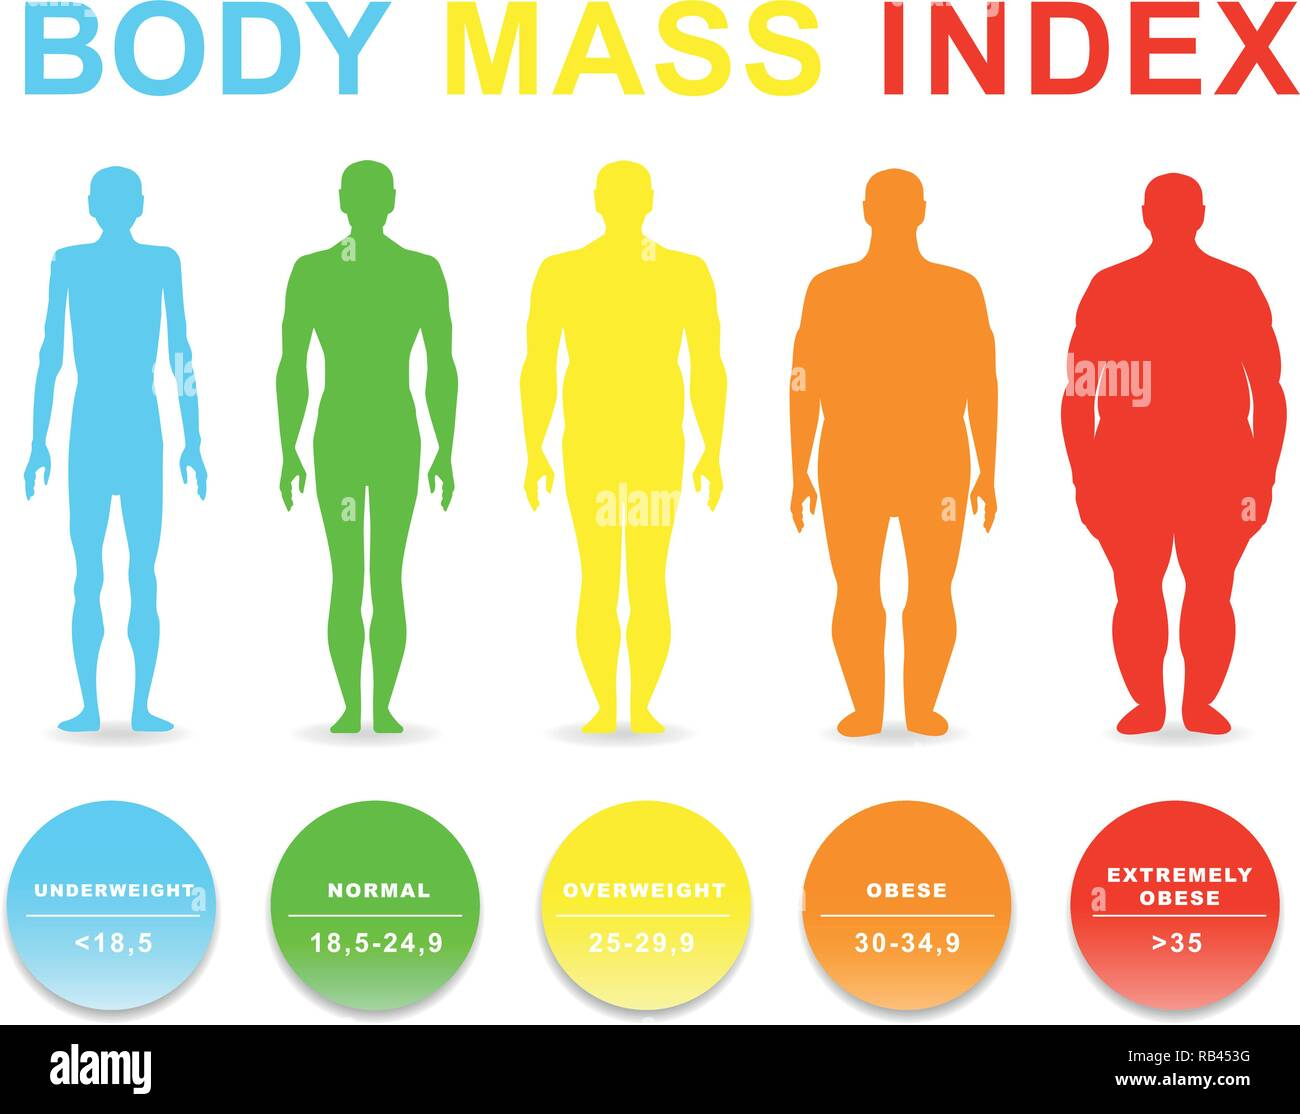 Body Mass Index Vector Illustration Silhouettes With Different Obesity Degrees Eps 10 Stock Vector Image Art Alamy